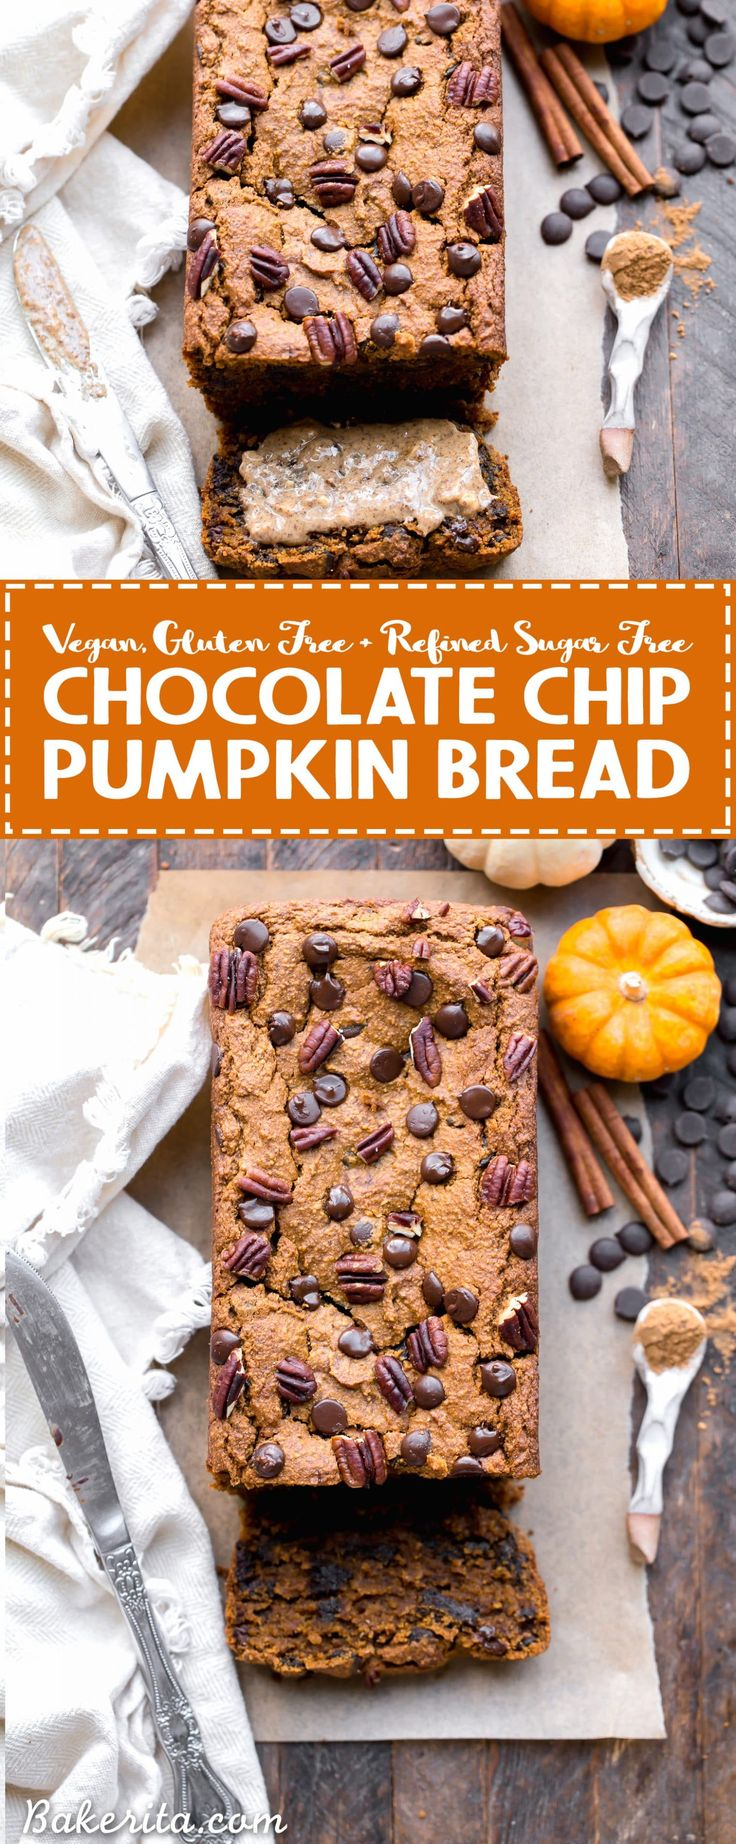 This Chocolate Chip Vegan Pumpkin Bread is quick and easy to make in one bowl! I…